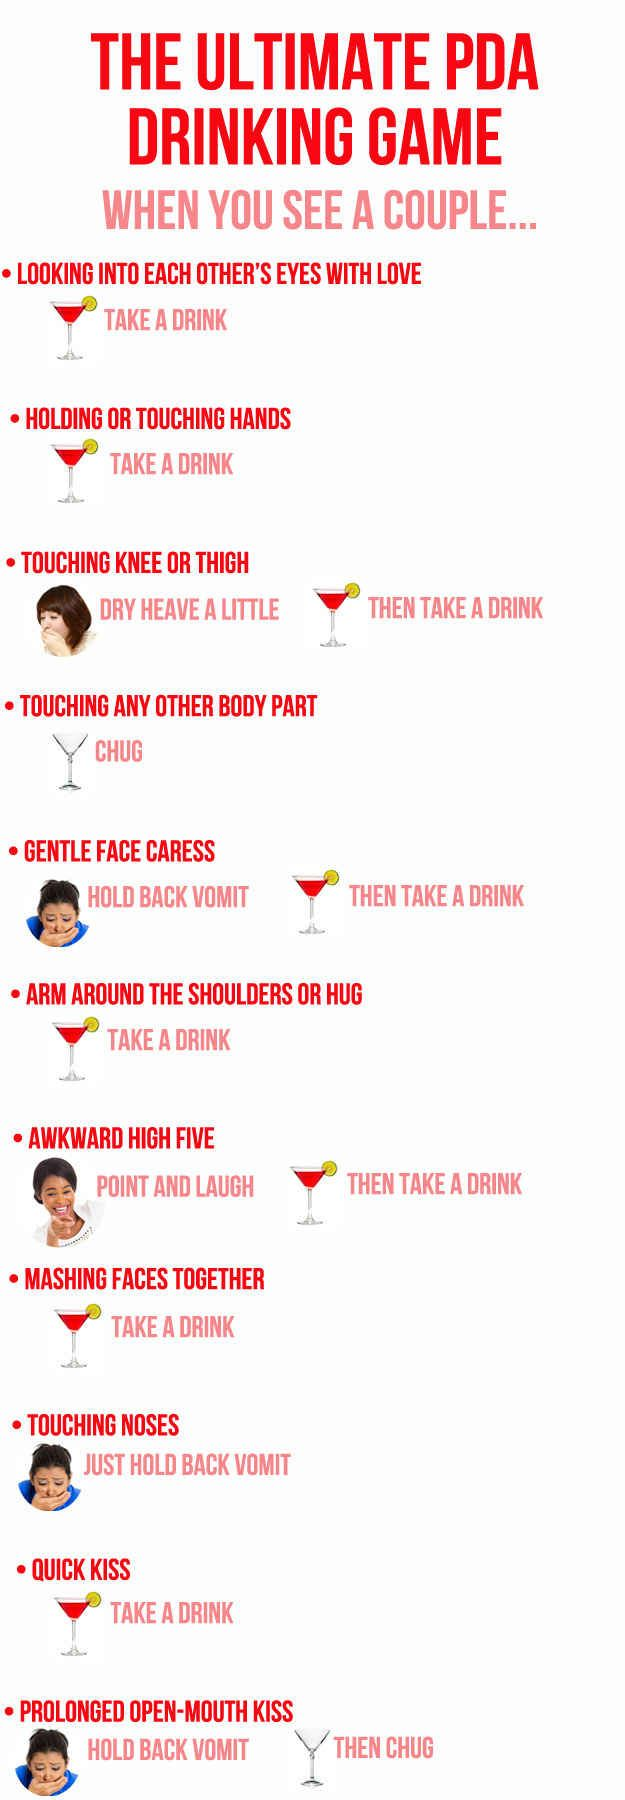 The Ultimate Valentine's Day Drinking Game